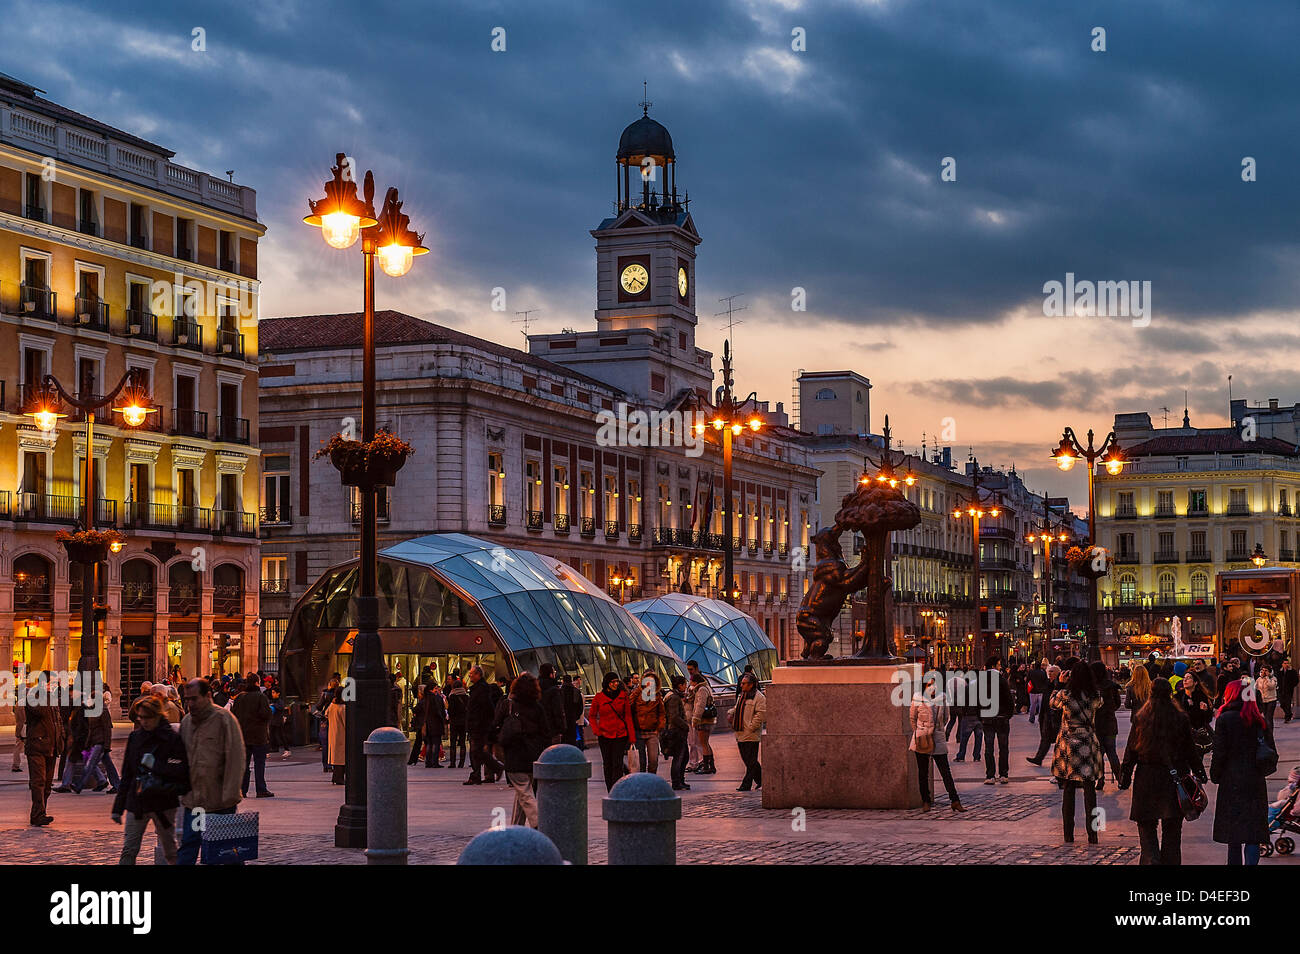 Puerta del Sol nightlife, Madrid, Spain - Stock Image